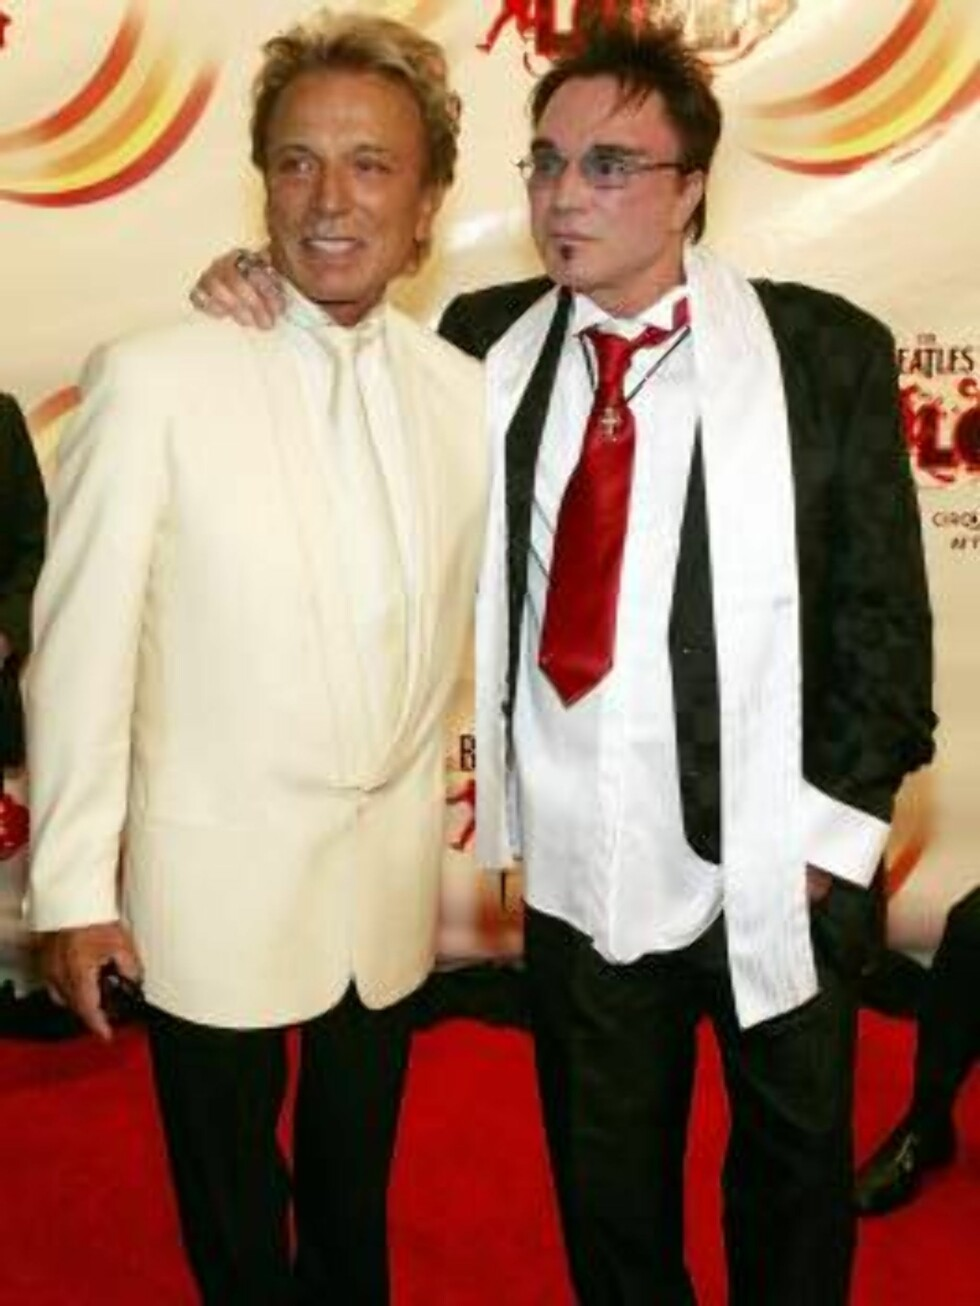 "LAS VEGAS - JUNE 30:  Magicians Siegfried Fischbacher (L) and Roy Horn arrive at the gala premiere of ""The Beatles LOVE by Cirque du Soleil"" at the Mirage Hotel & Casino June 30, 2006 in Las Vegas, Nevada.  (Photo by Ethan Miller/Getty Images) *** Local C Foto: All Over Press"